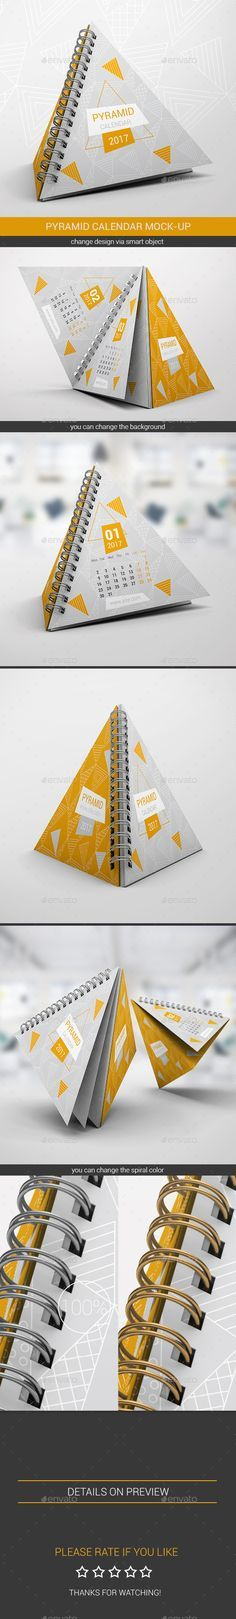 Pyramid Calendar Mock-Up - Miscellaneous Print                                                                                                                                                                                 Mais